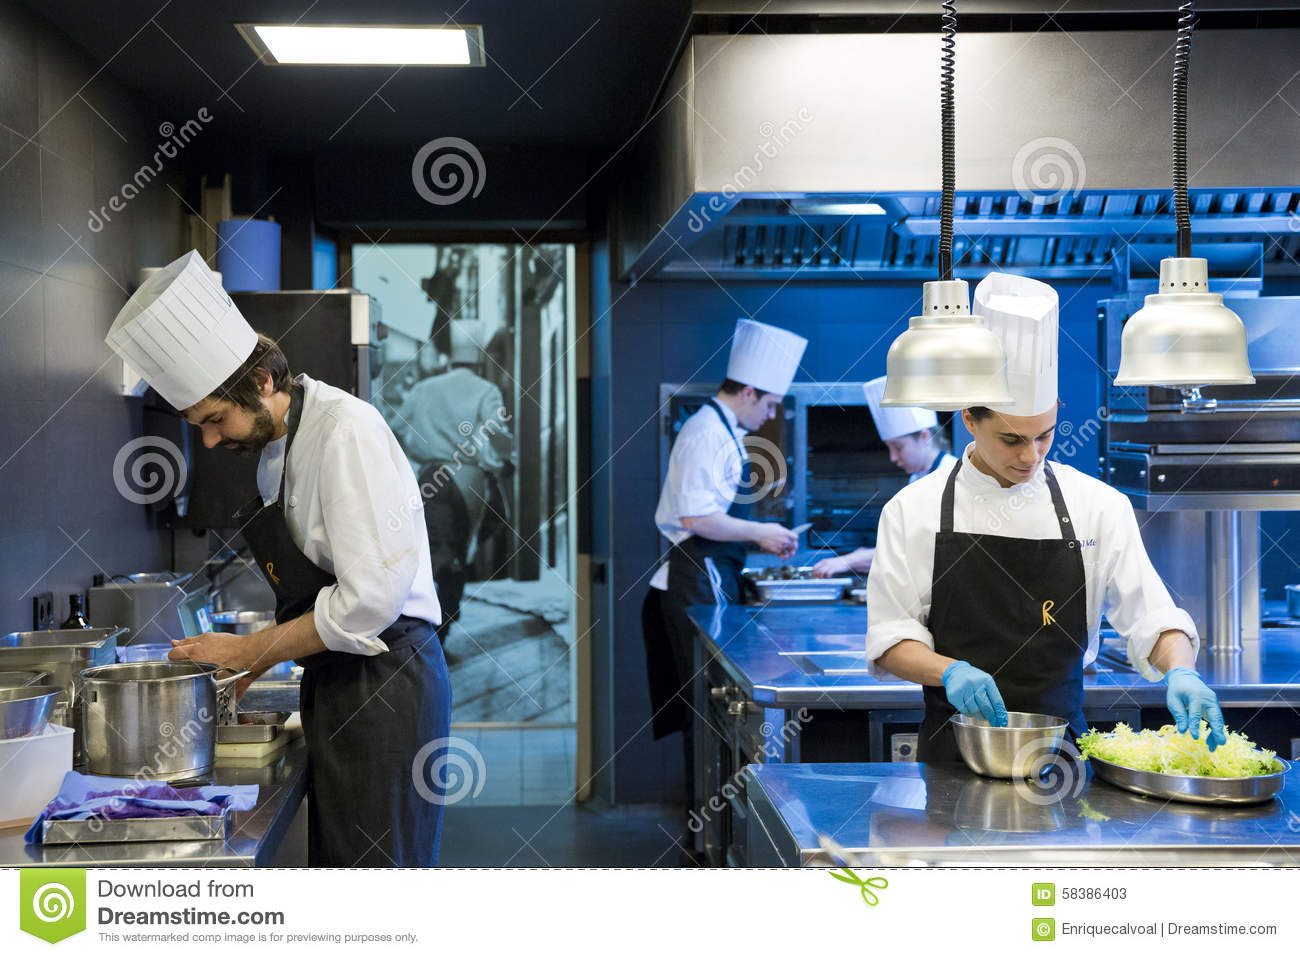 Kitchen workers editorial stock photo. Image of majorca - 58386403